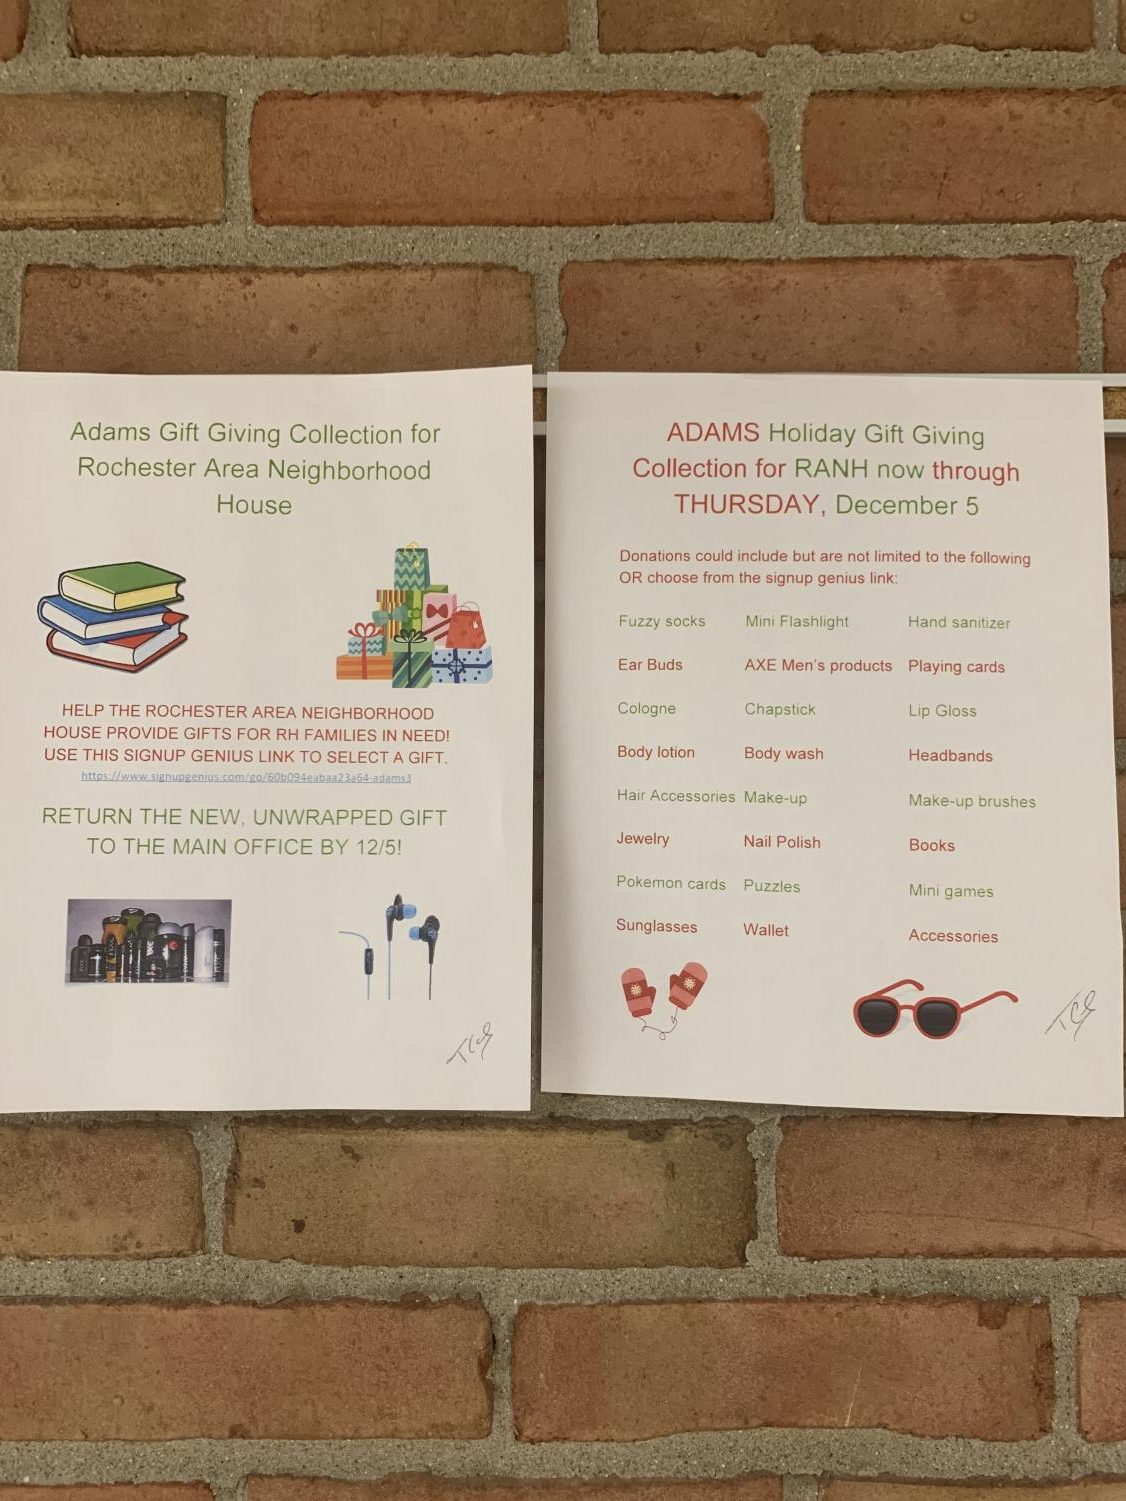 Flyers can be found hung up around the school                                                                                                                                                         giving info for the gift giving collection